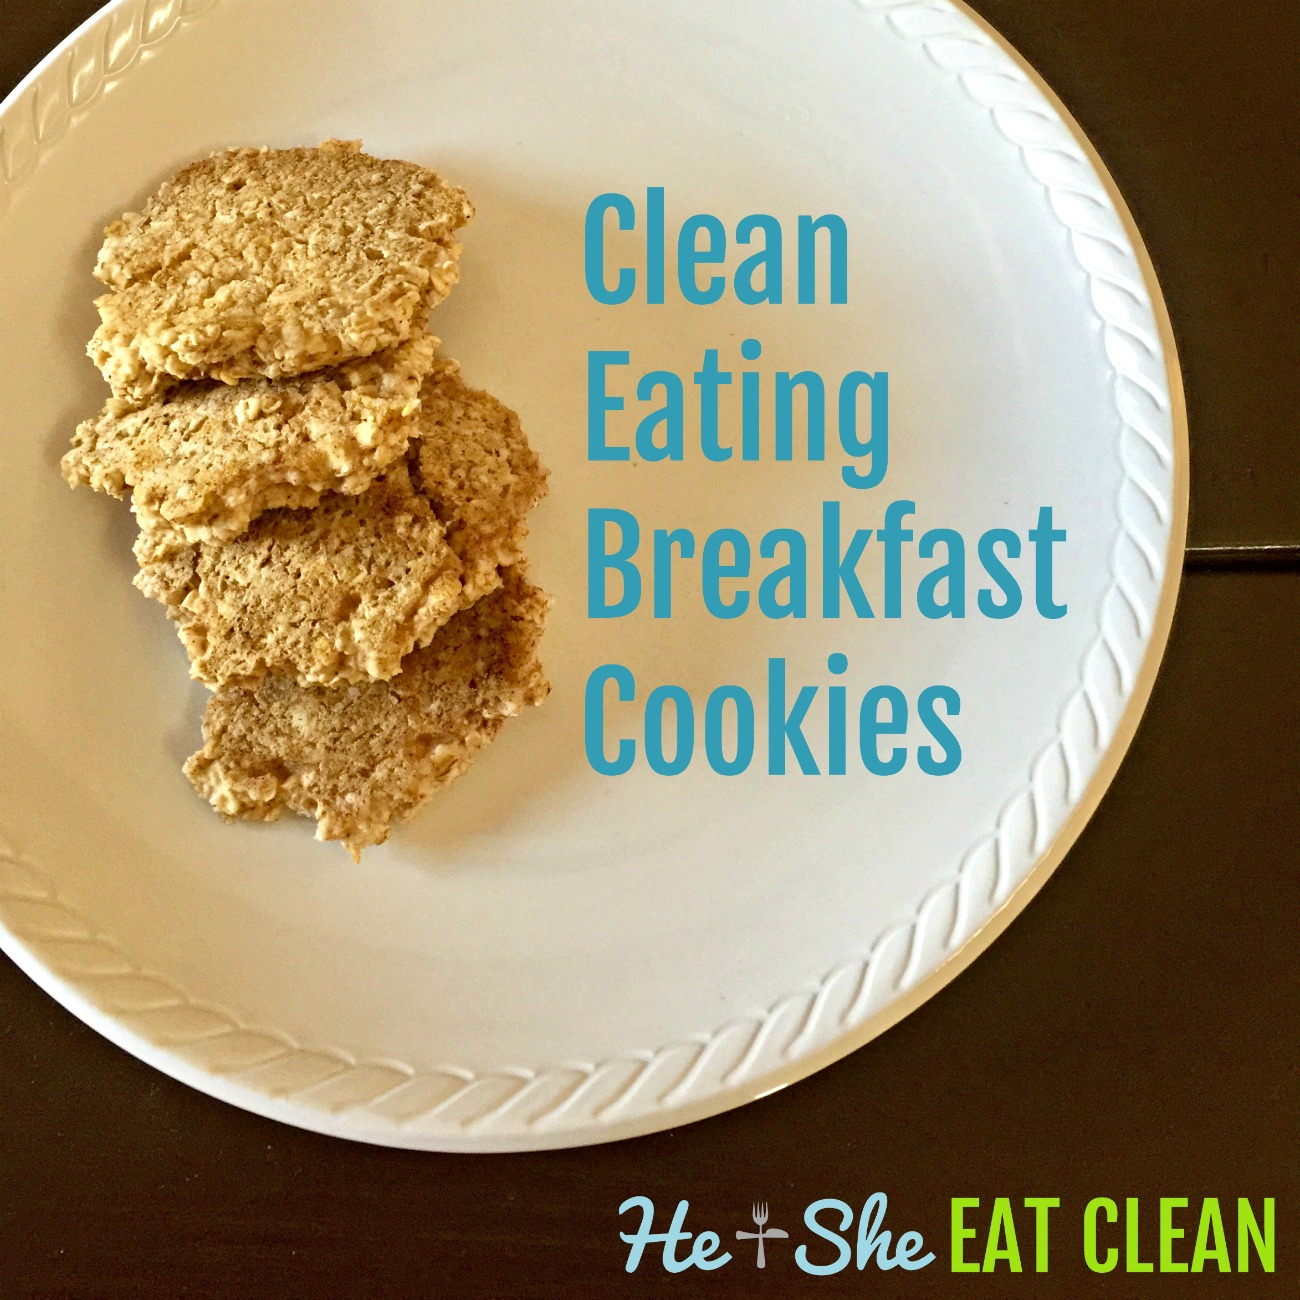 Clean Eating Breakfast Cookies